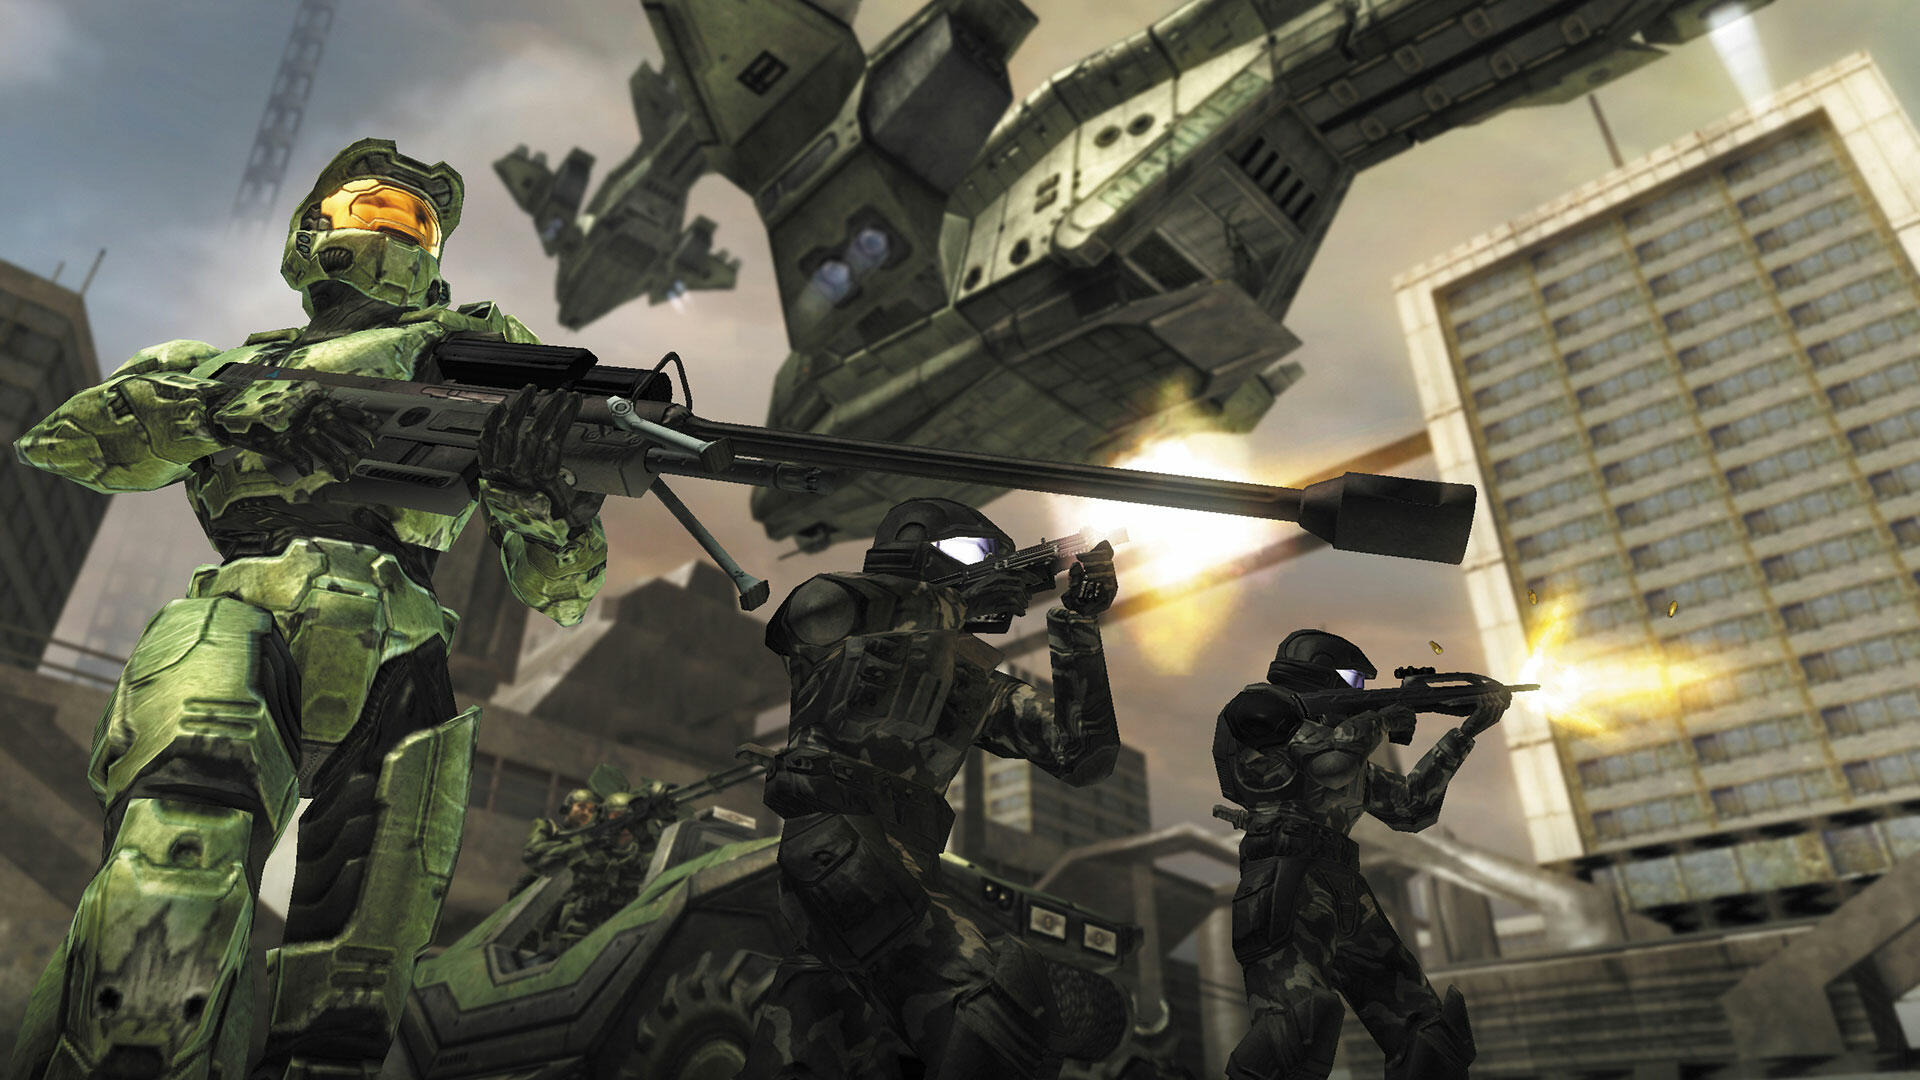 Halo 2's Early Xbox Live Party Prototype is a Glimpse Into the Not-So-Distant Past